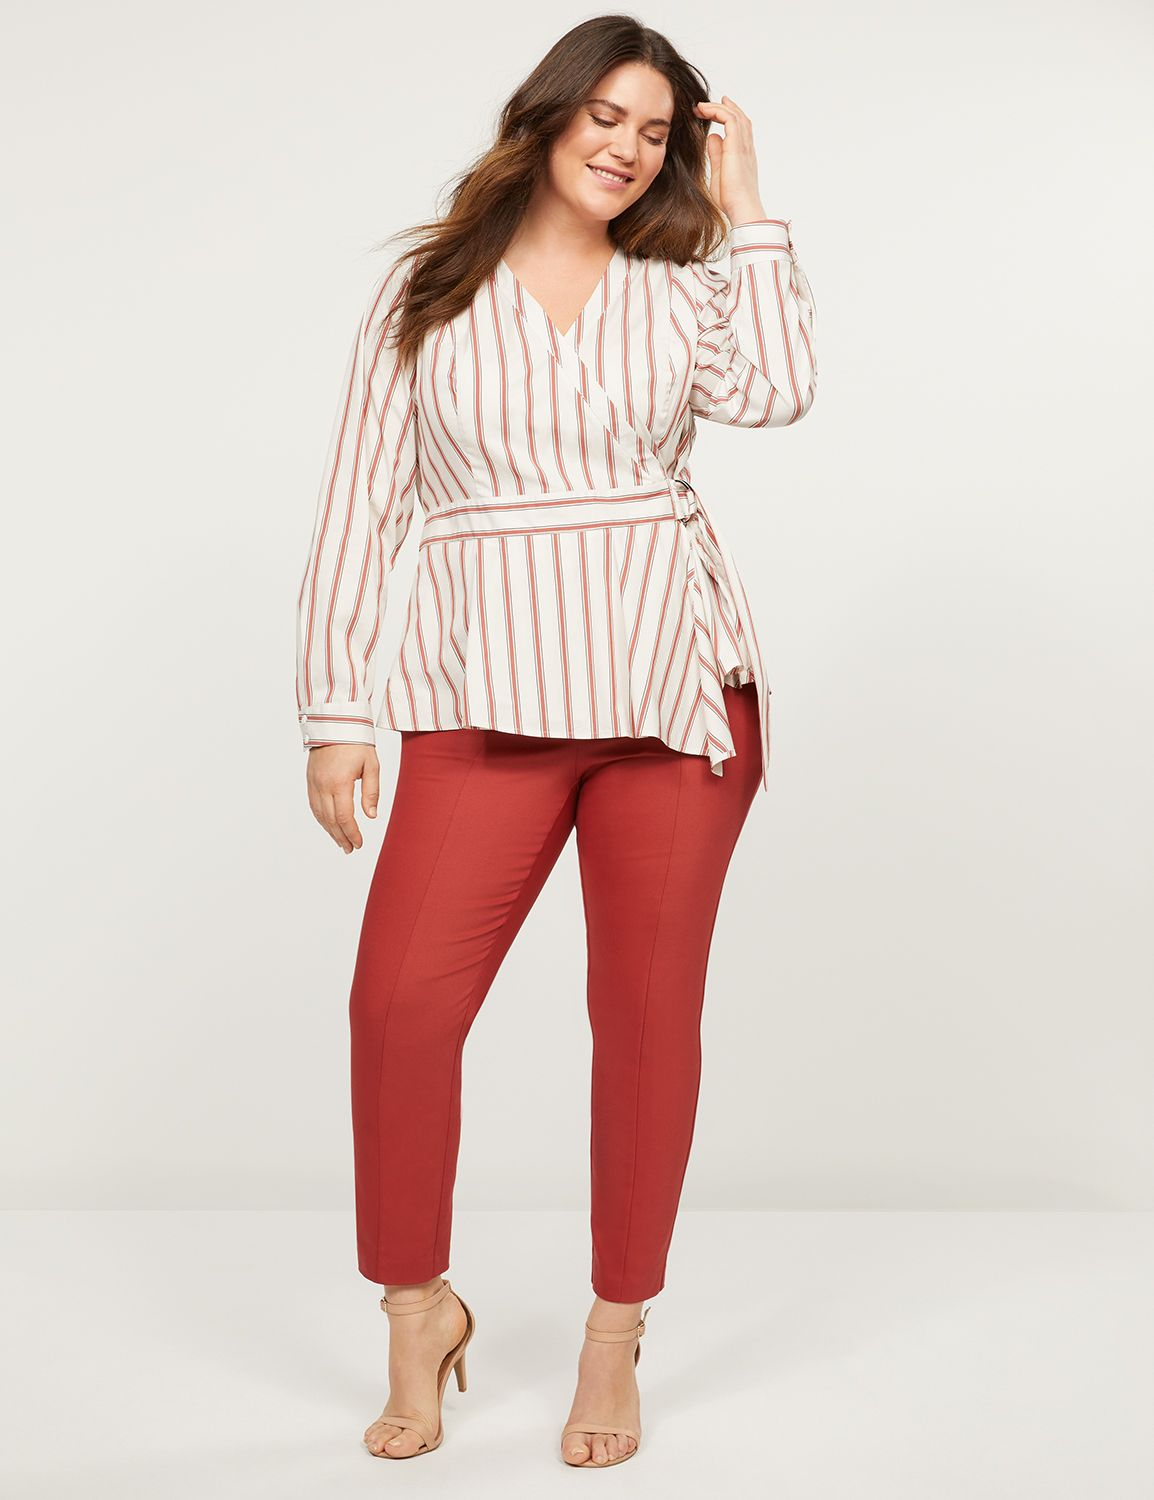 Lane Bryant Women's Power Pockets Allie Modern Stretch Ankle Pant 24P Scorched Red